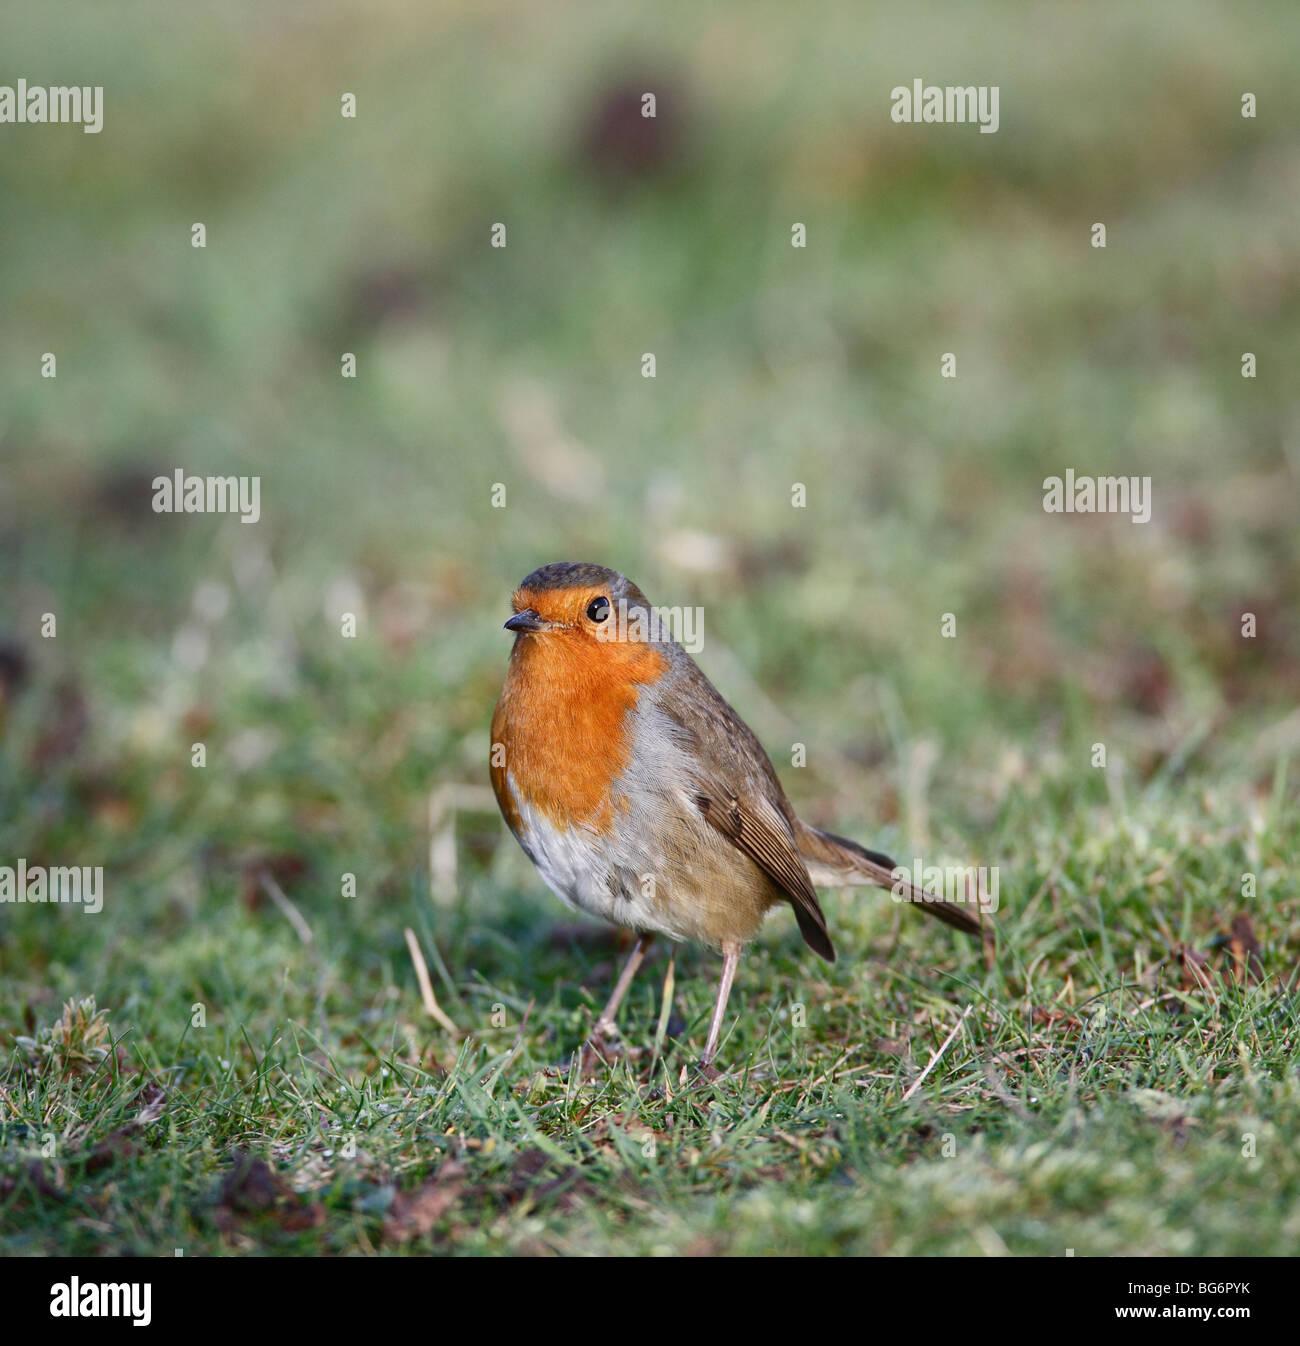 robin (erithacus rubecula) perching on lawn front view - Stock Image